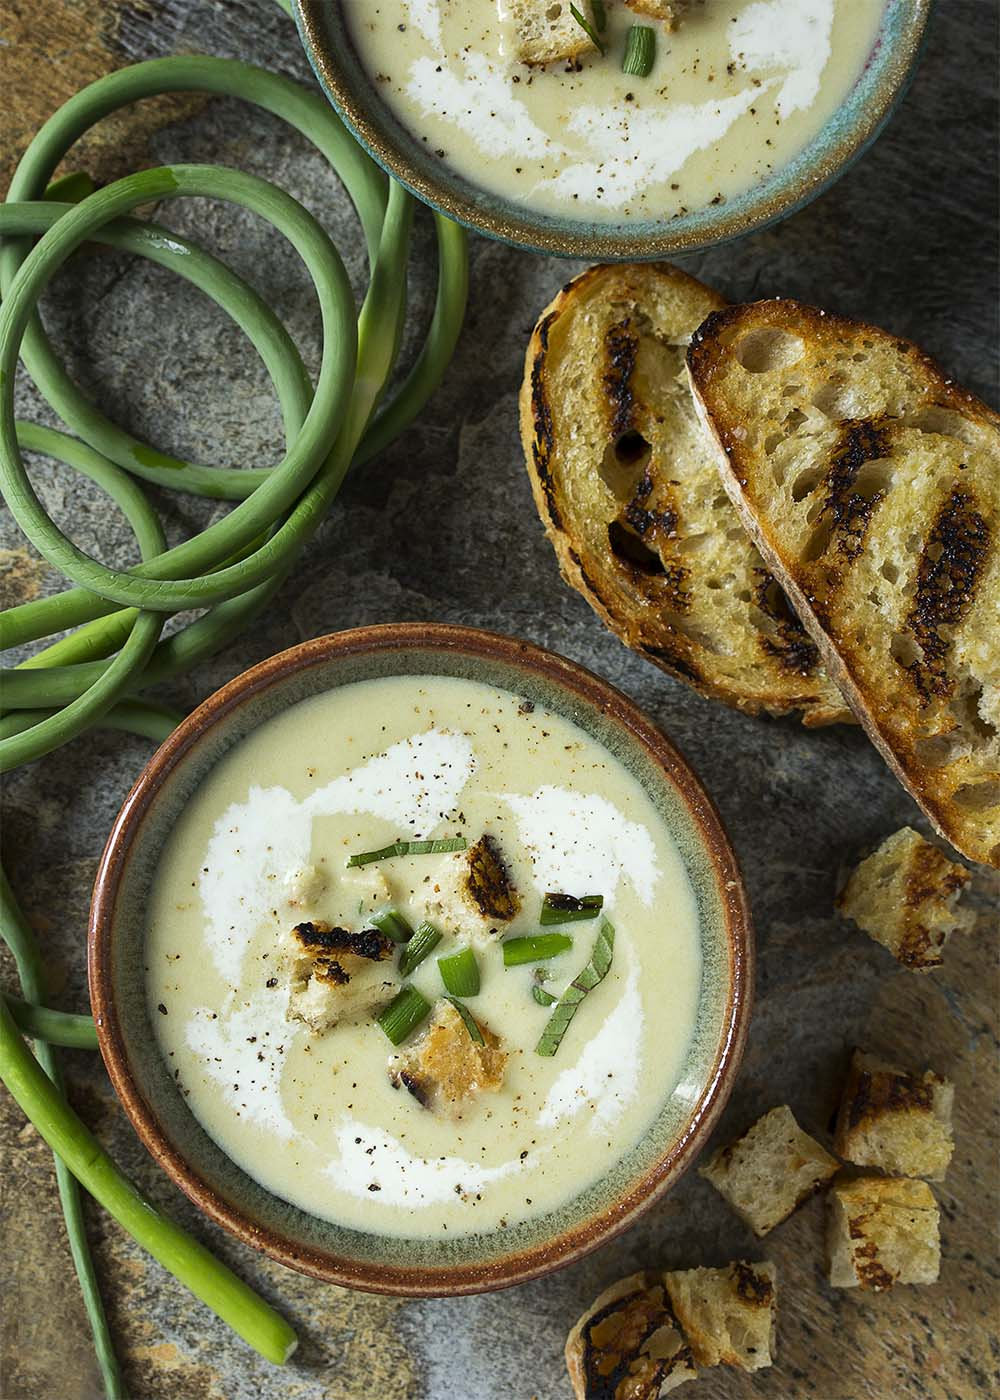 Top view of bowls of garlic scape soup garnished with grilled bread crumbs, basil, and swirls of cream.